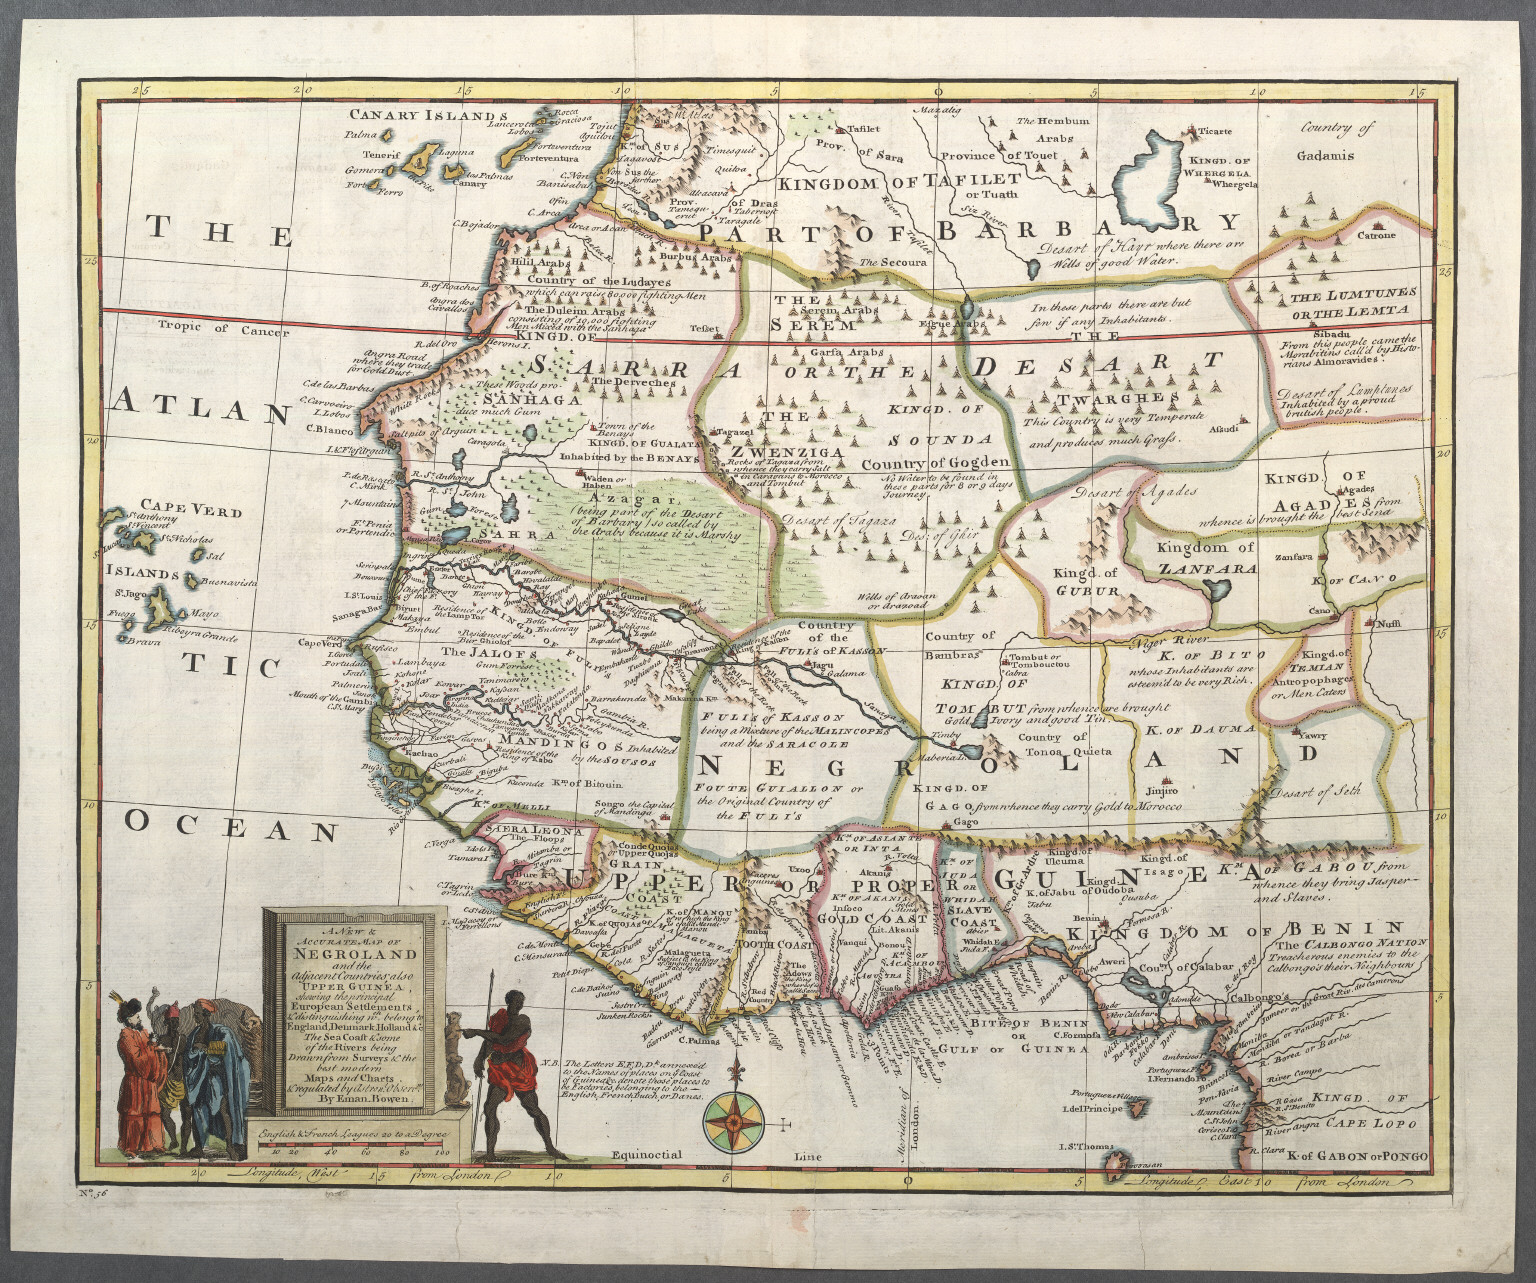 Early map of Negroland depicts the coastal regions of the Trans Atlantic Slave Trade